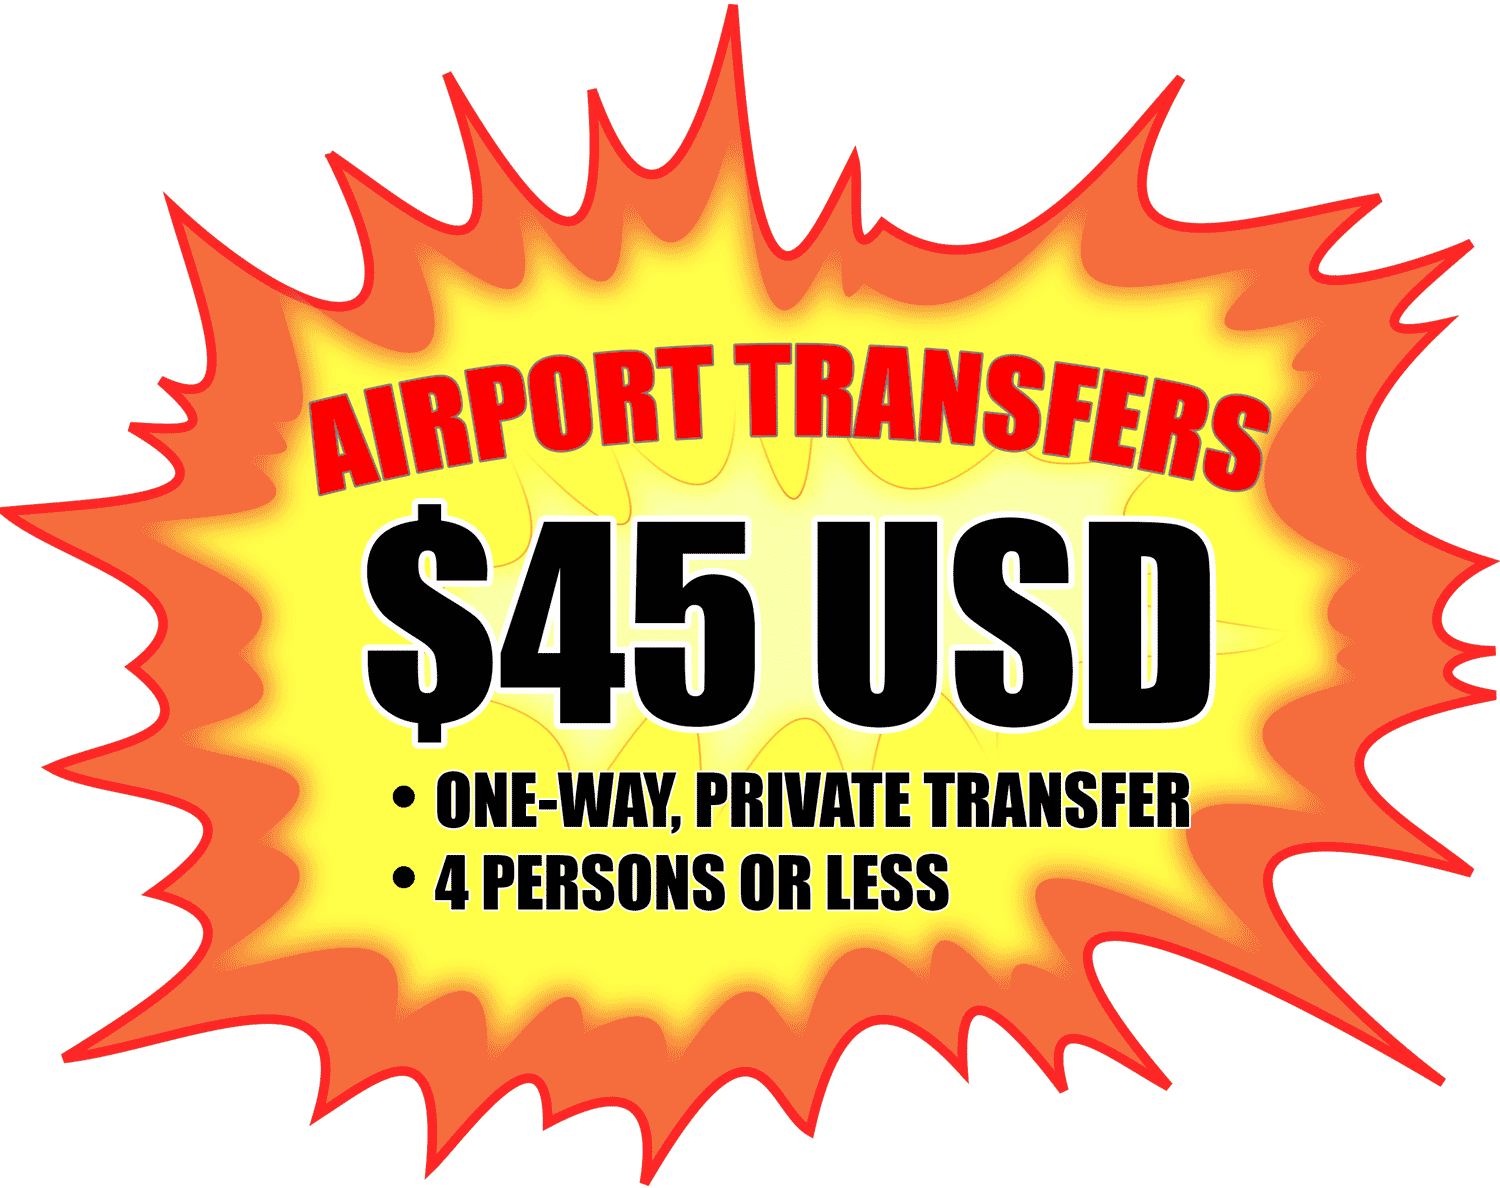 A $45 USD airport transfer graphic.